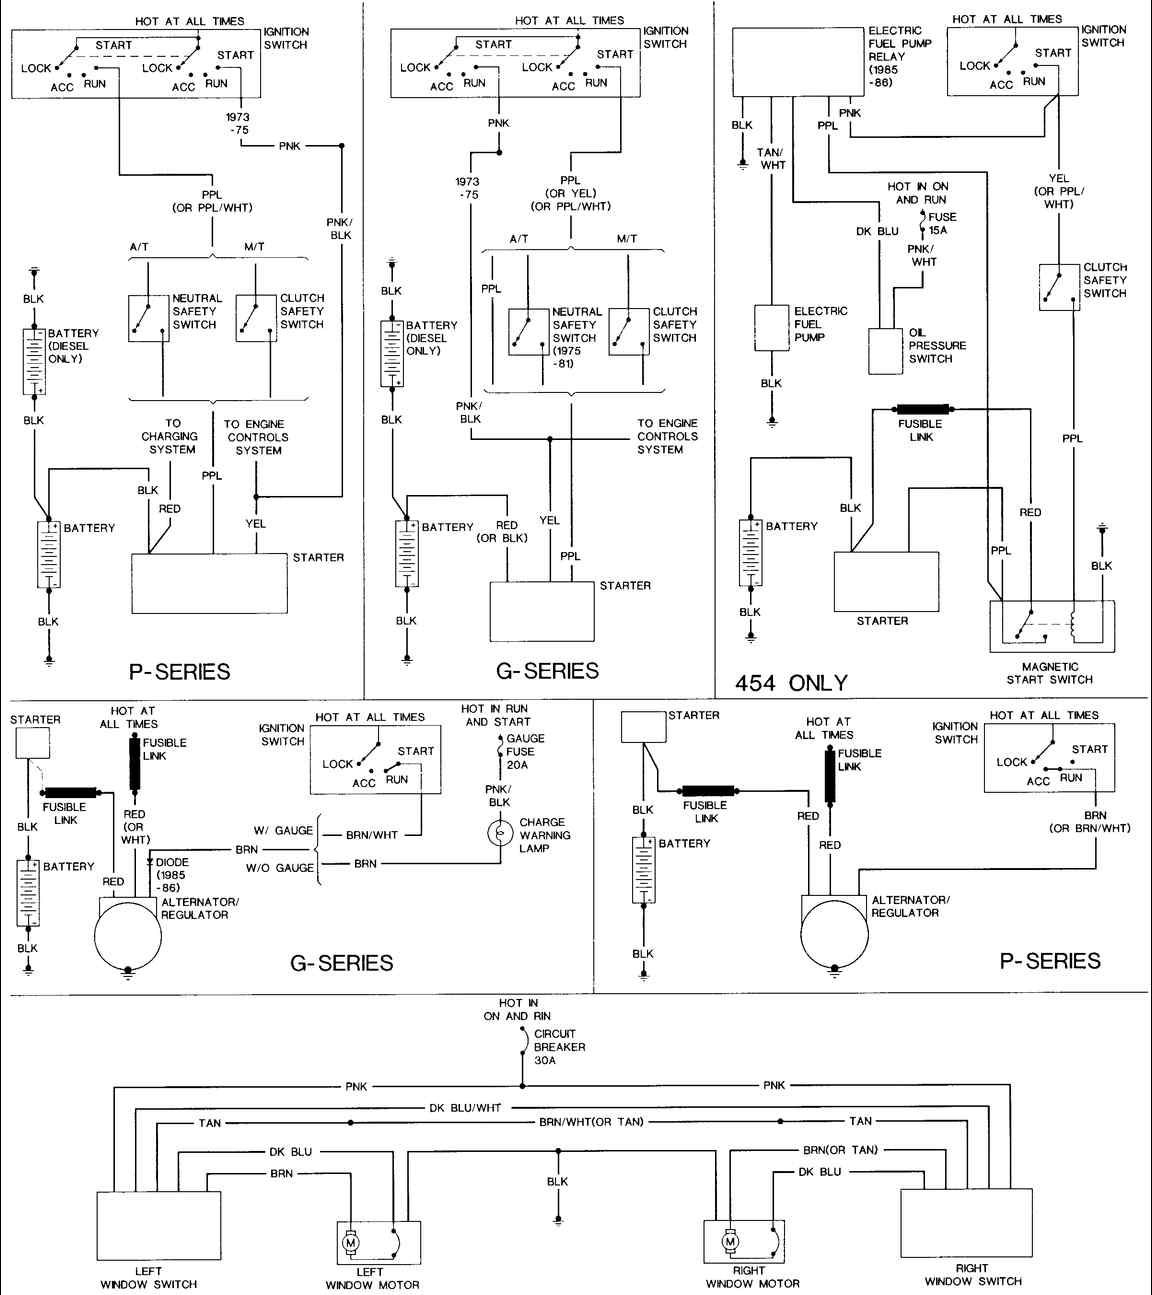 1985 chevy 305 engine diagram wiring schematic easy to read wiring rh mywiringdiagram today Rochester Quadrajet Carburetor Vacuum Diagram Chevy Truck Vacuum Diagram